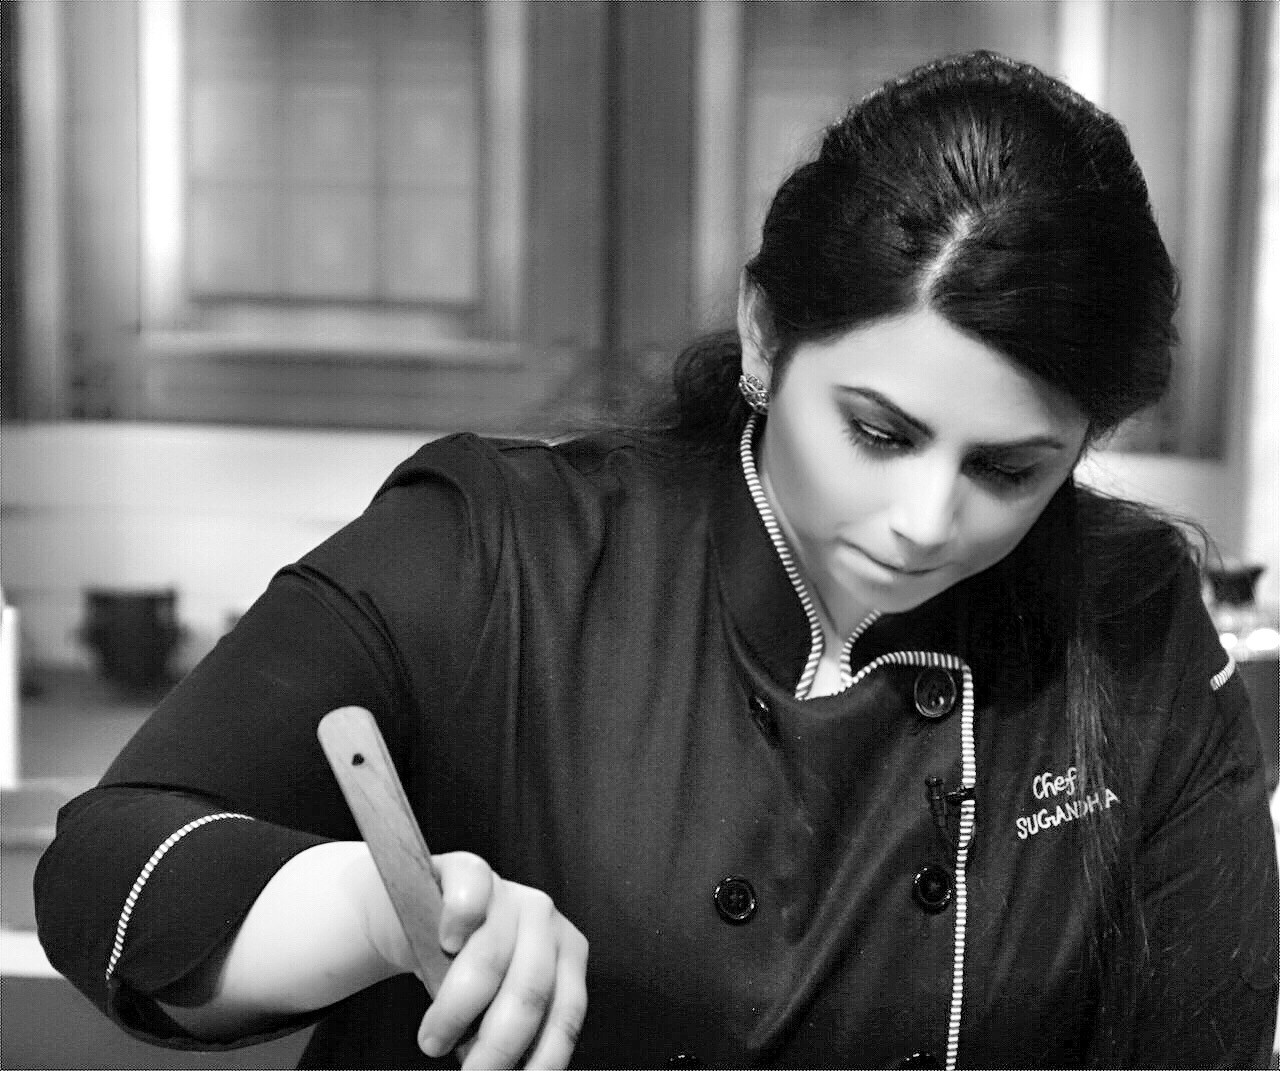 Sugandha Saxena became chef and entrepreneur after her SSTH studies